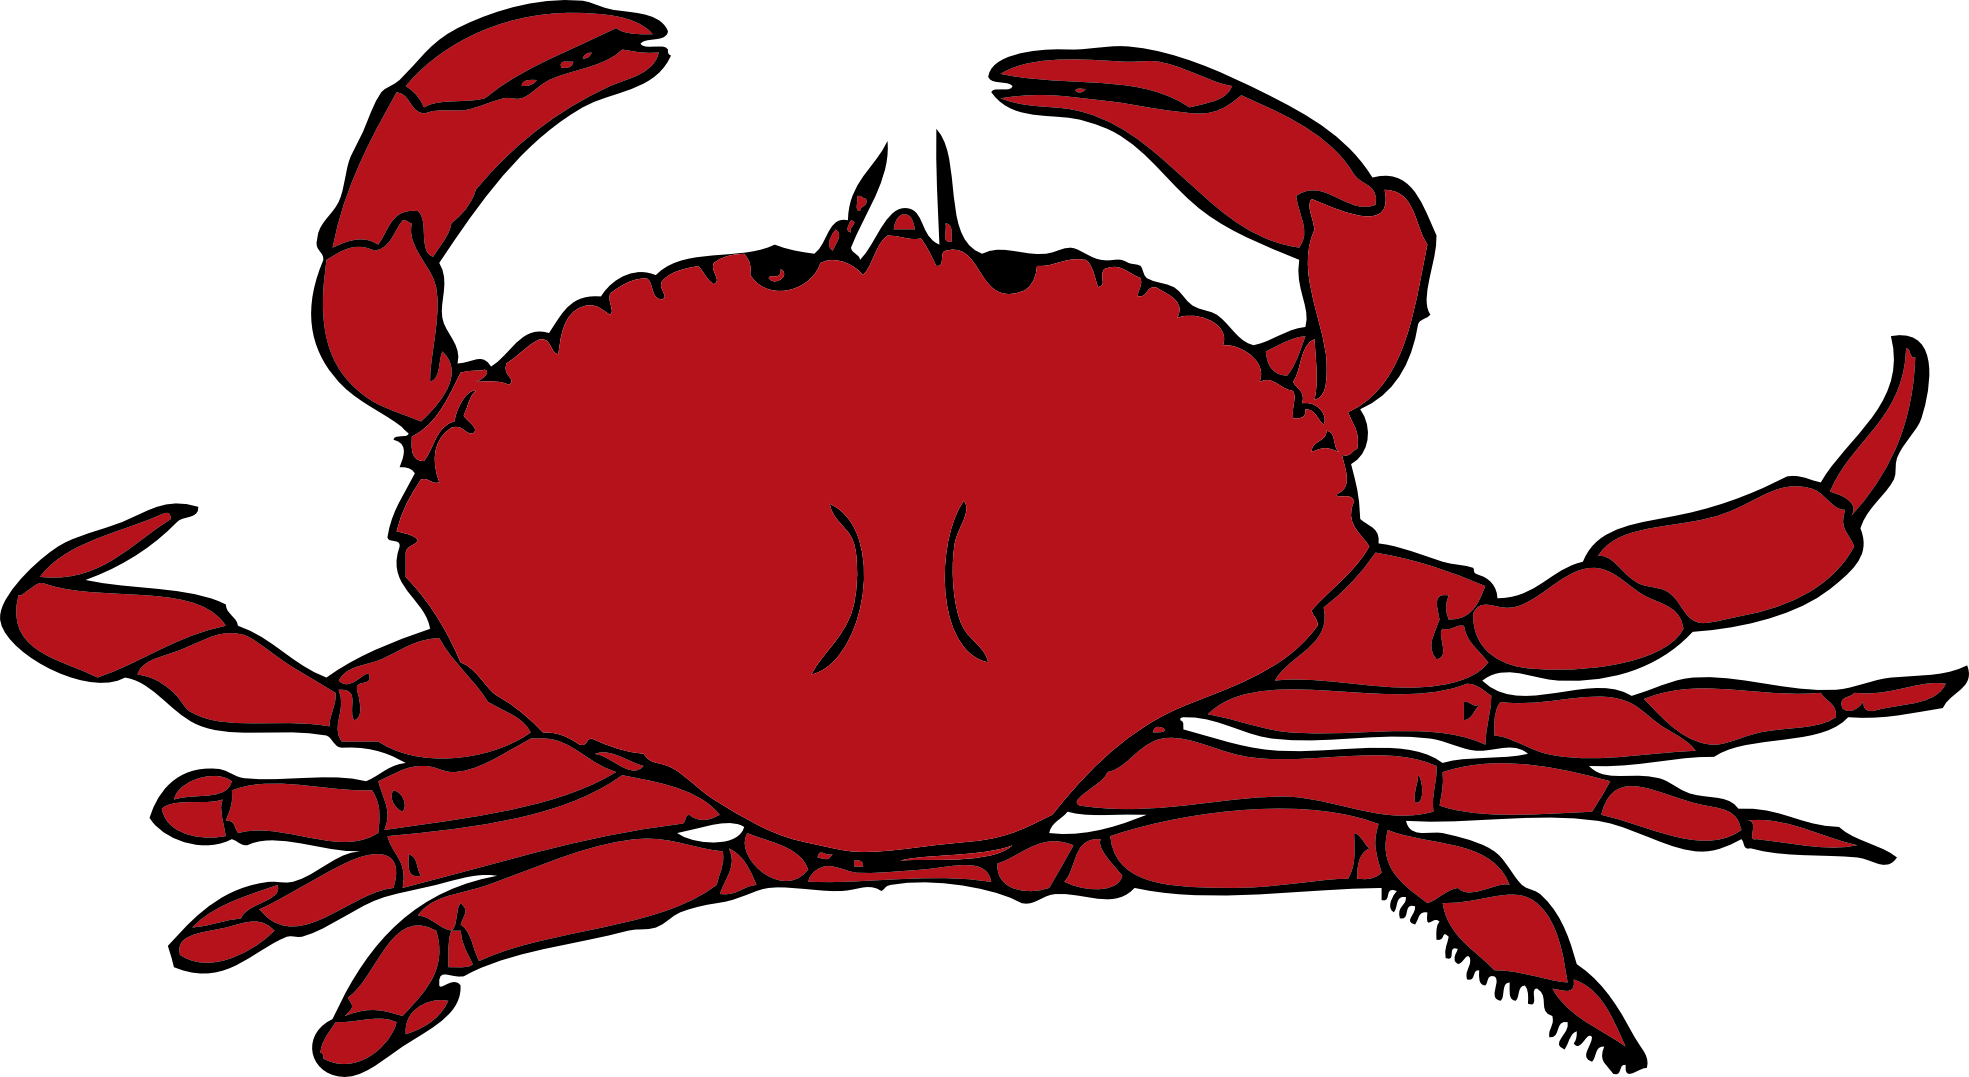 Crab clipart lobster. Crustaceans pencil and in